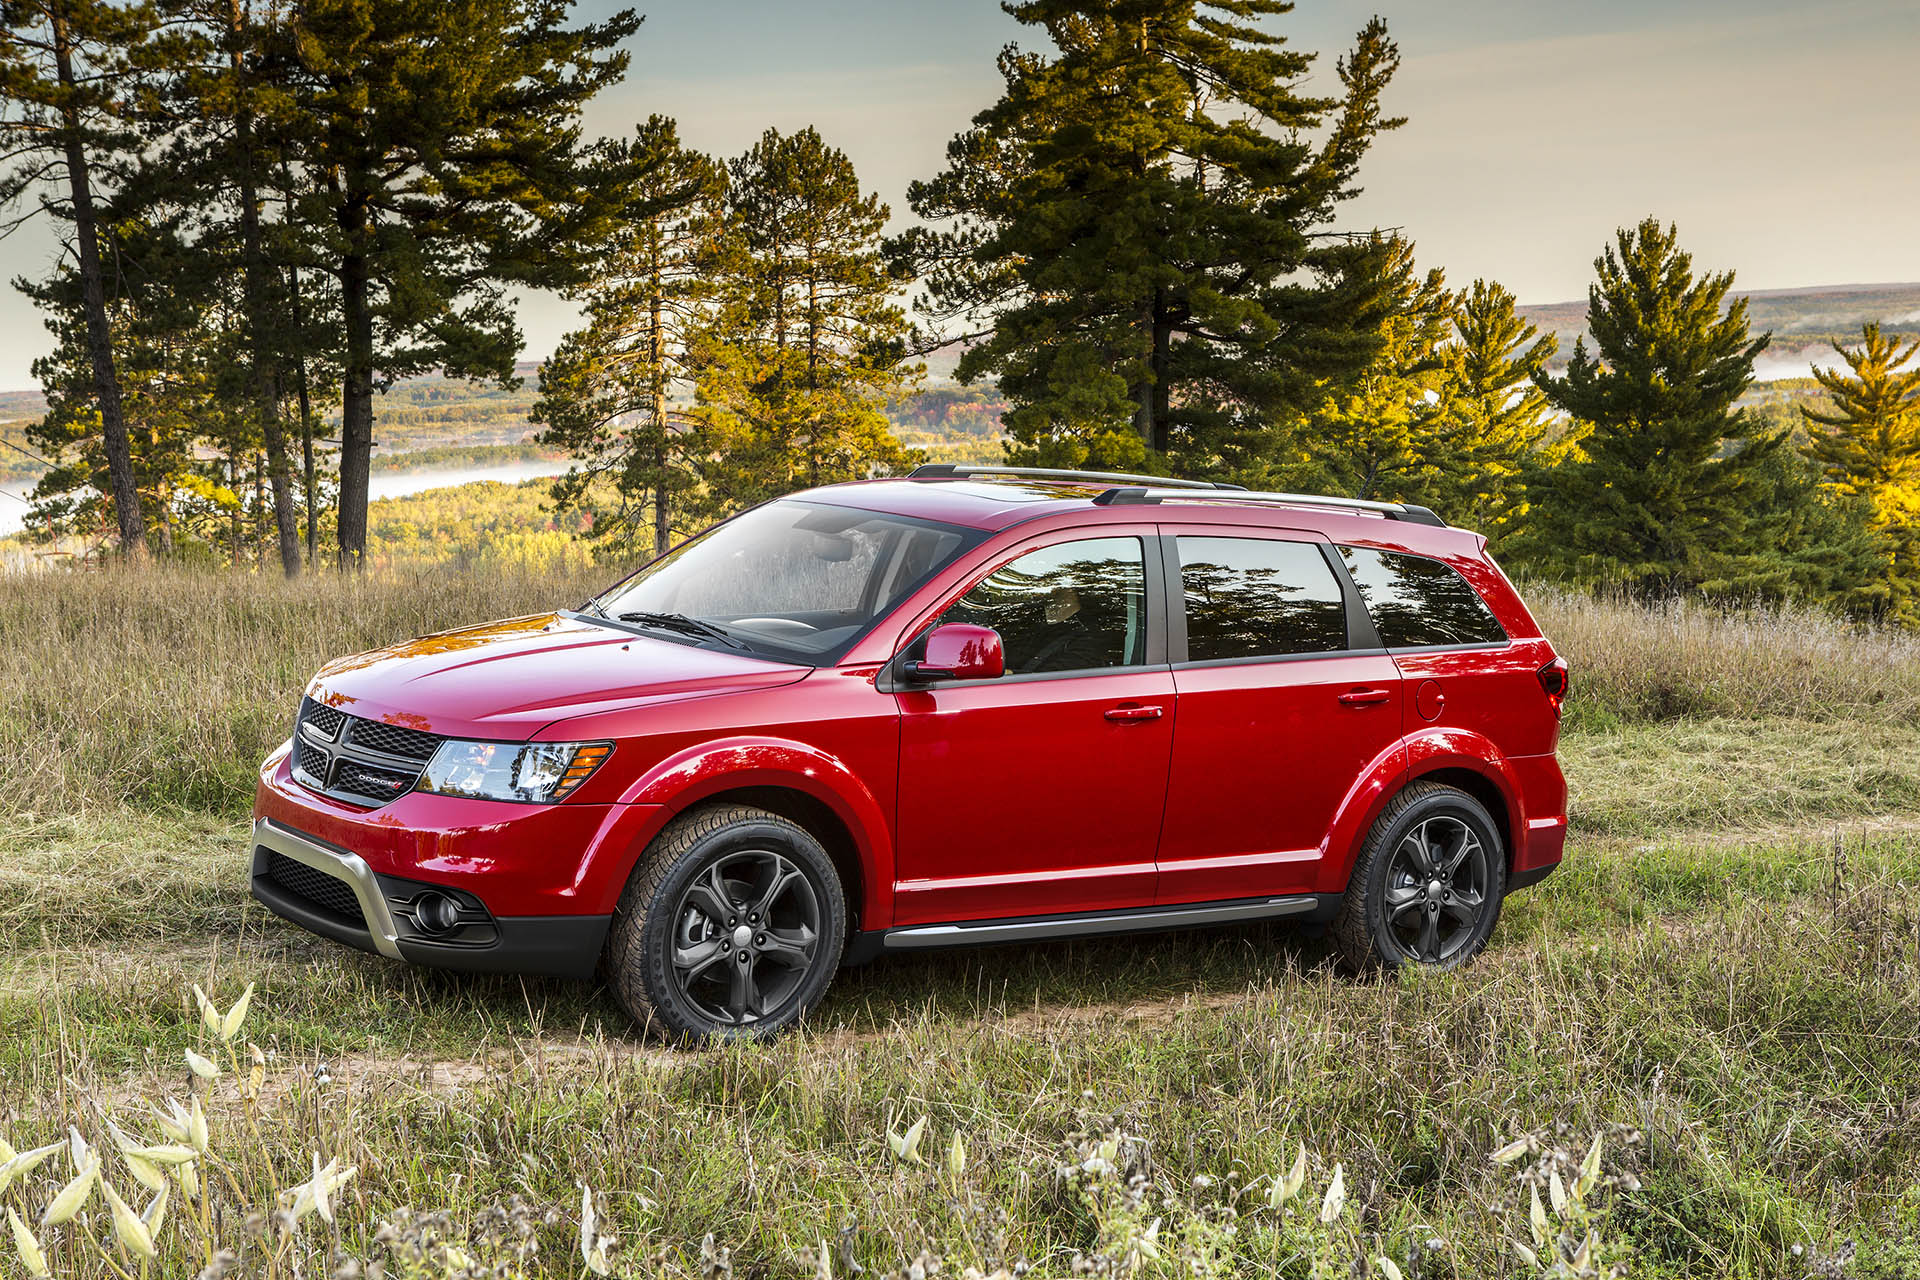 Chrysler Jeep Denver 2017 Dodge Journey Performance Review - The Car Connection